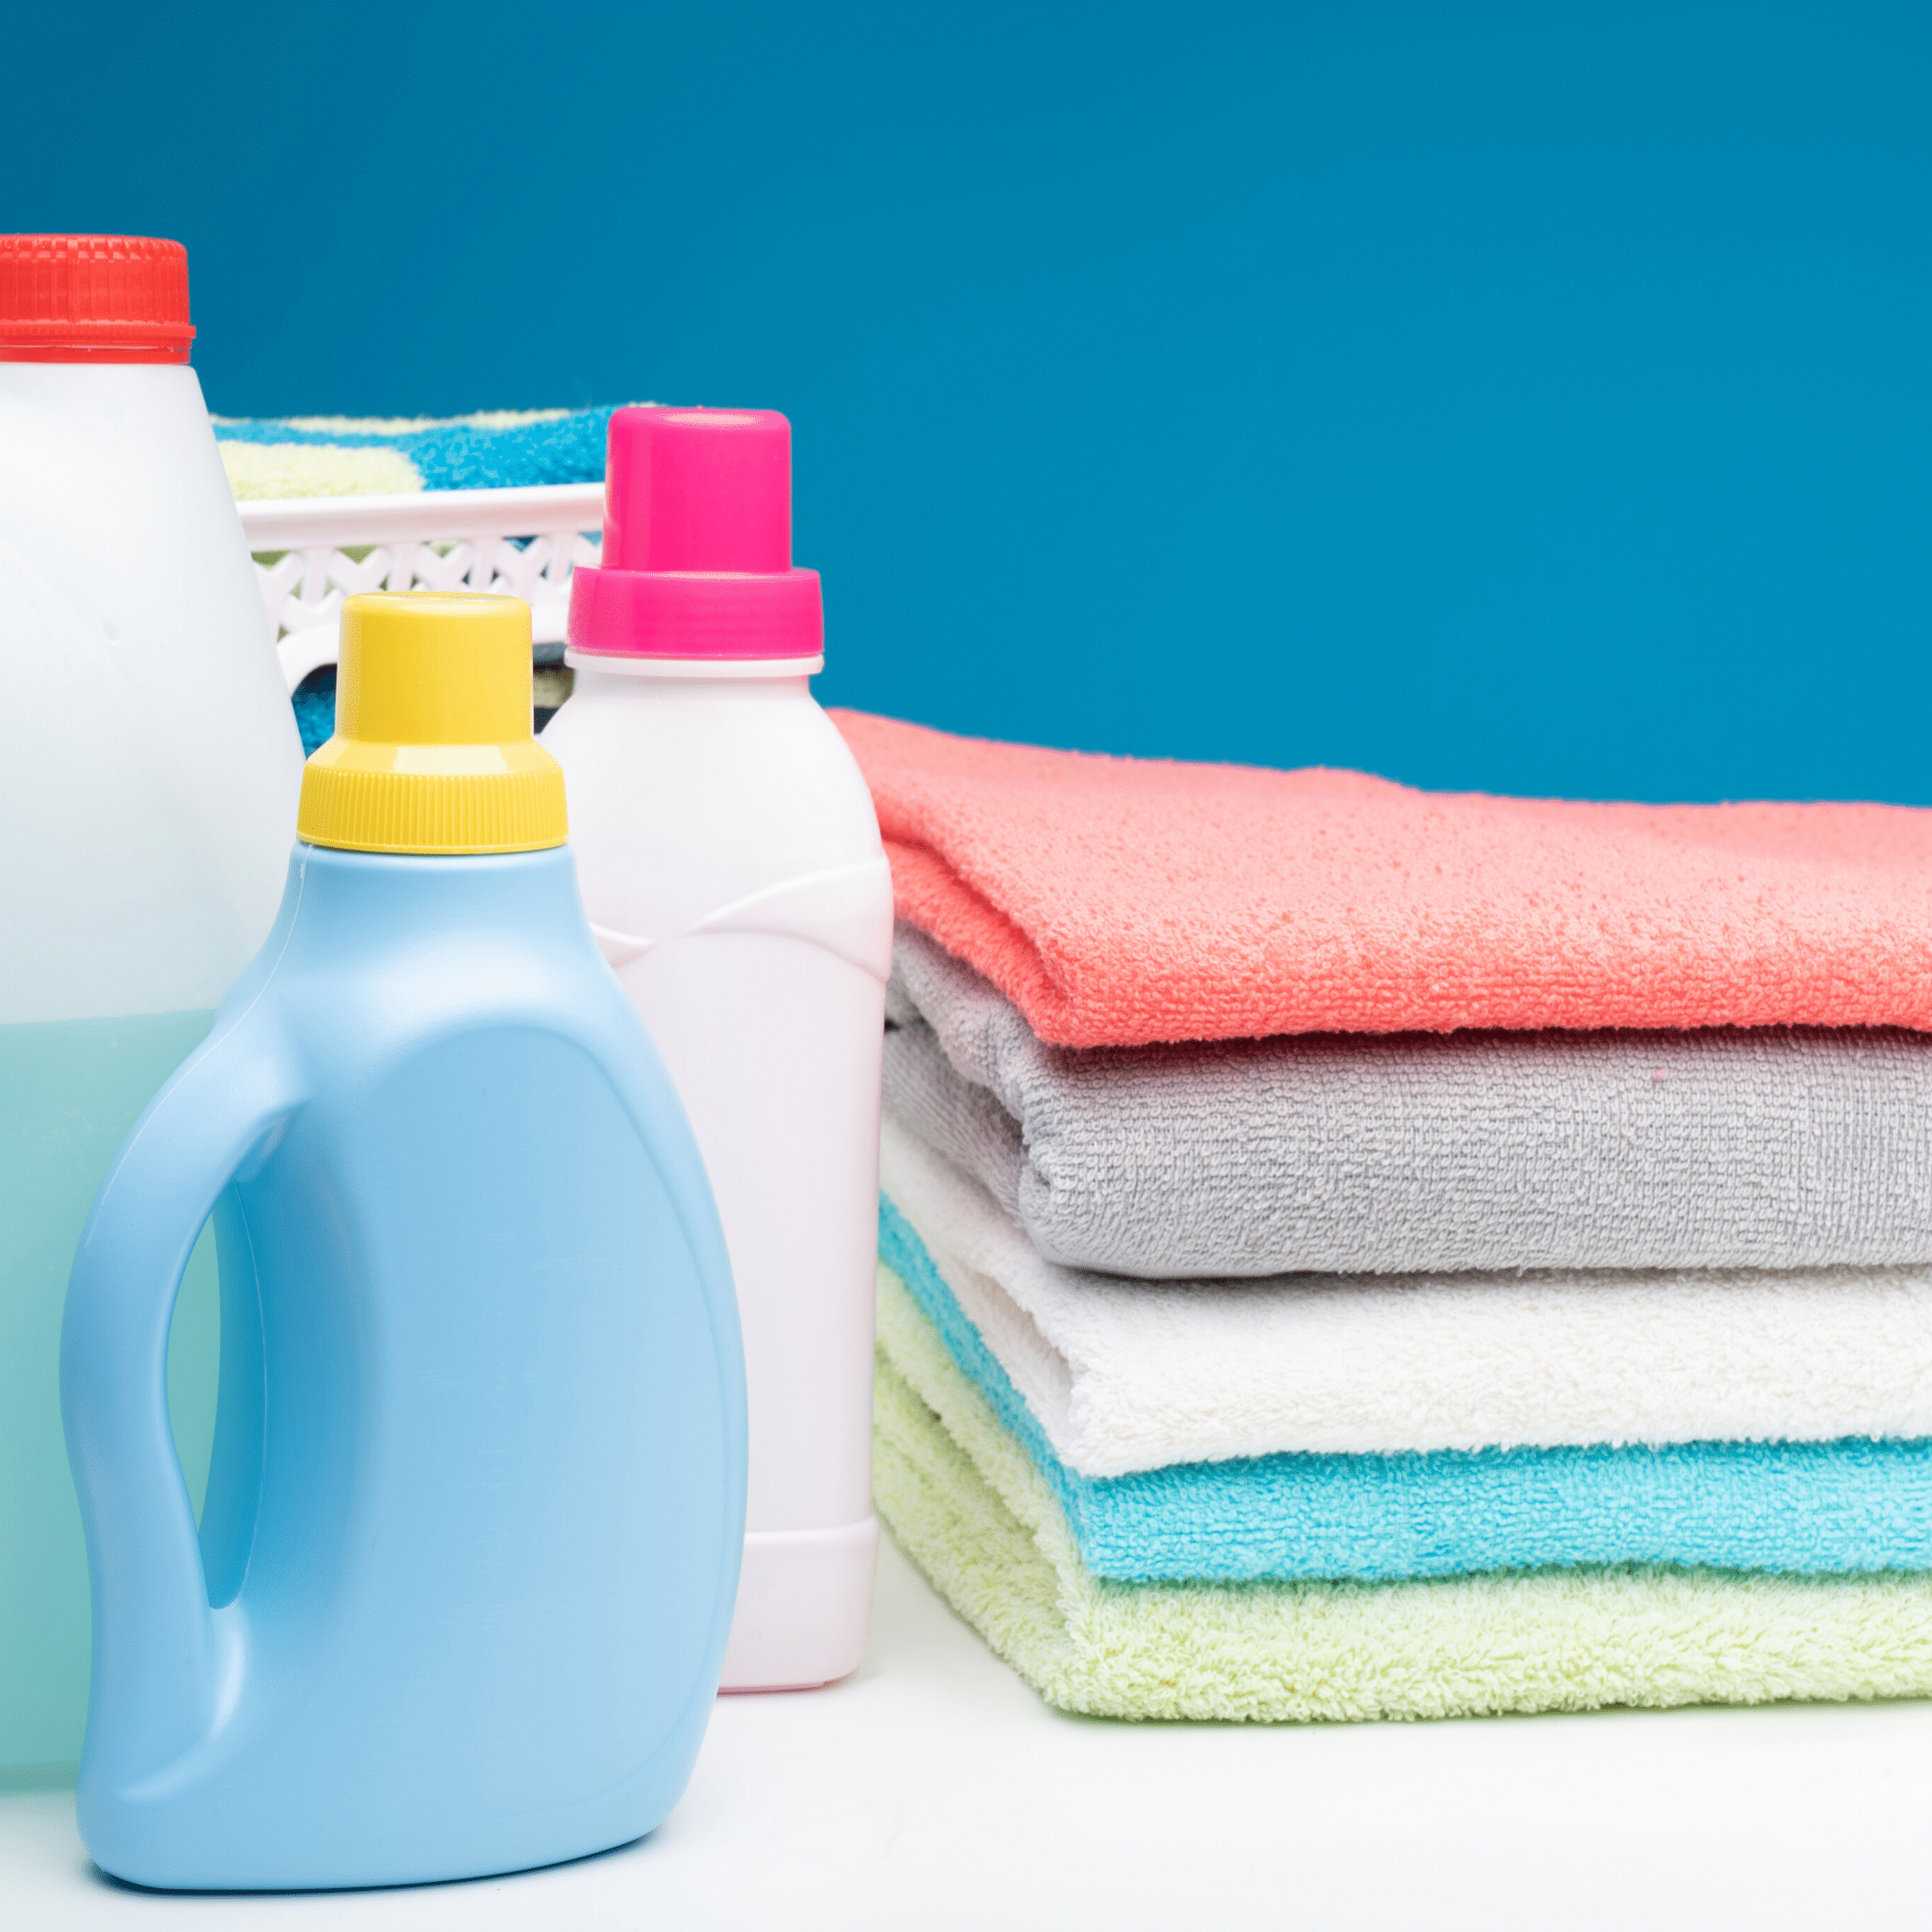 laundry supplies and towels